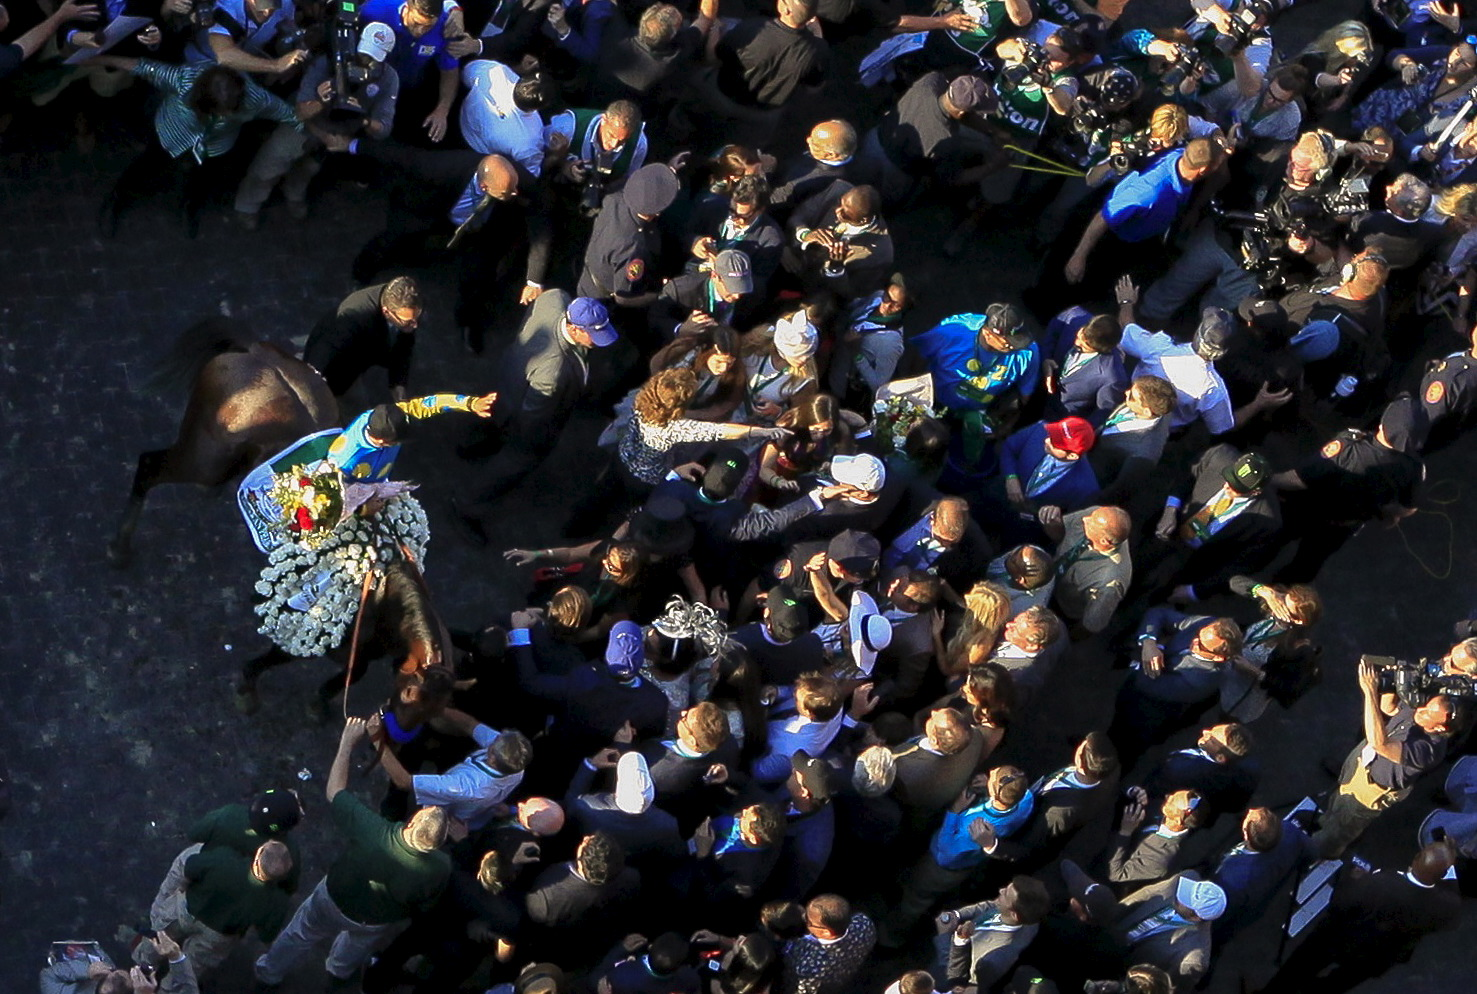 Espinoza, sitting atop American Pharoah, waves to fans from the winners circle after winning the Belmont Stakes. Photo by Carlo Allegri /Reuters